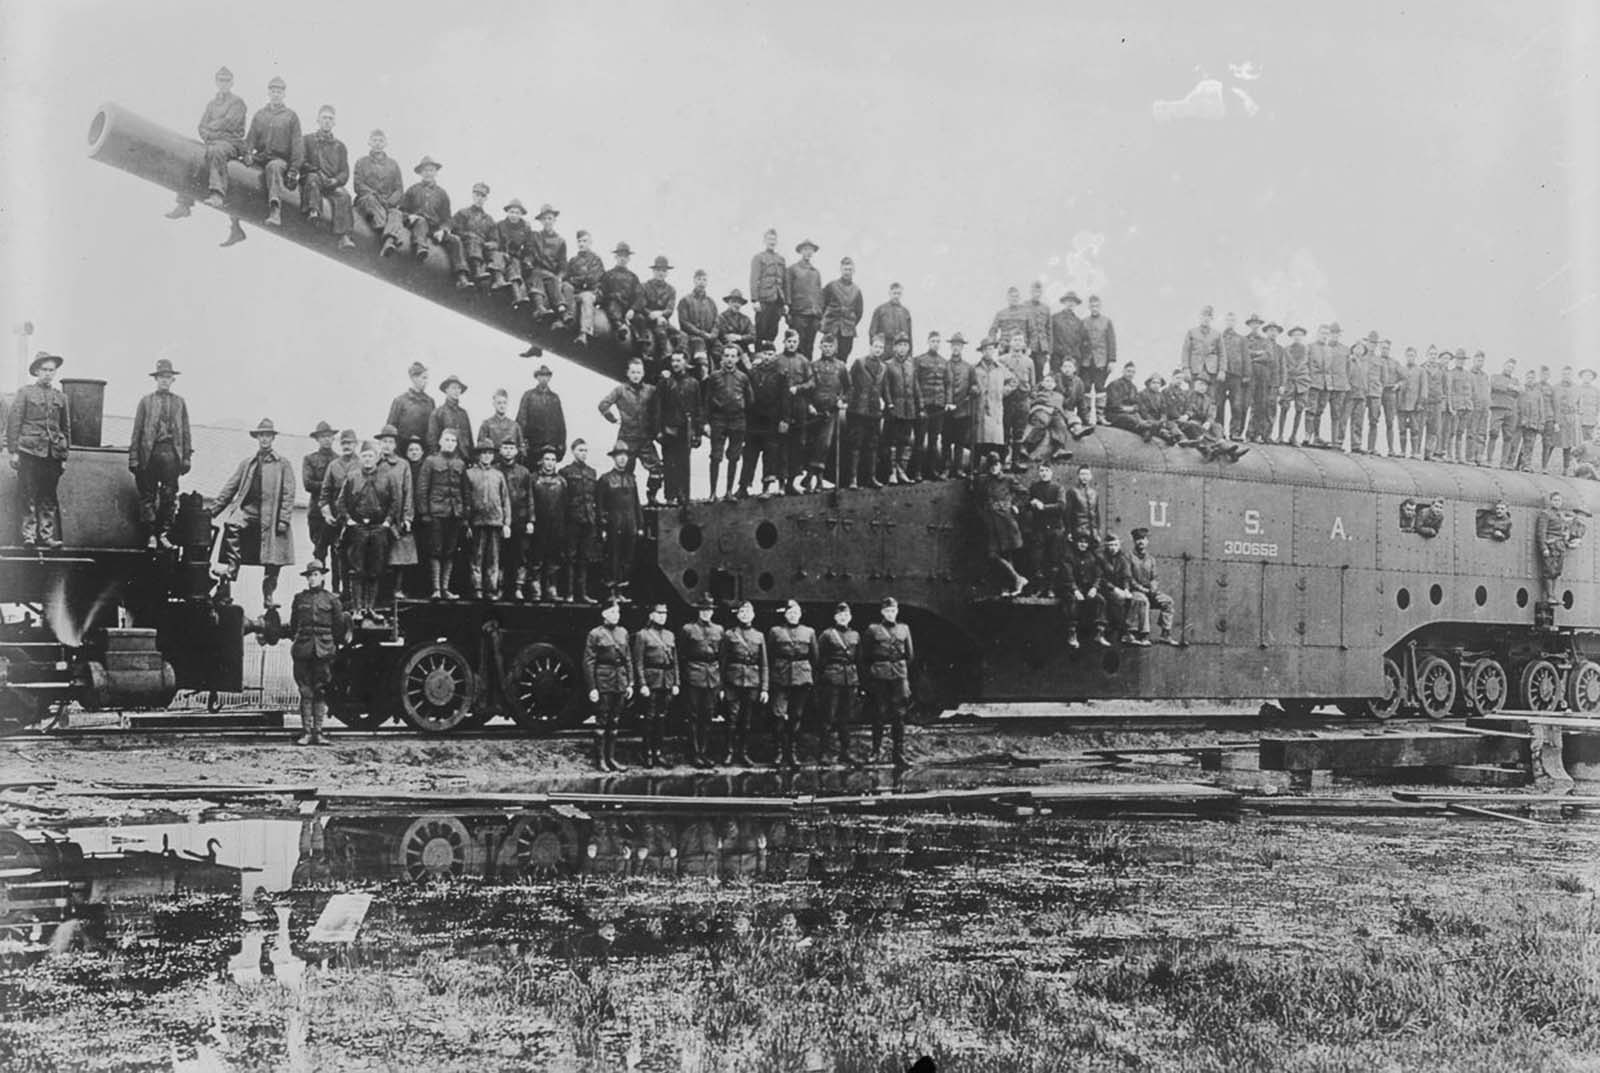 An artillery unit poses on a massive railway gun in France. 1918.